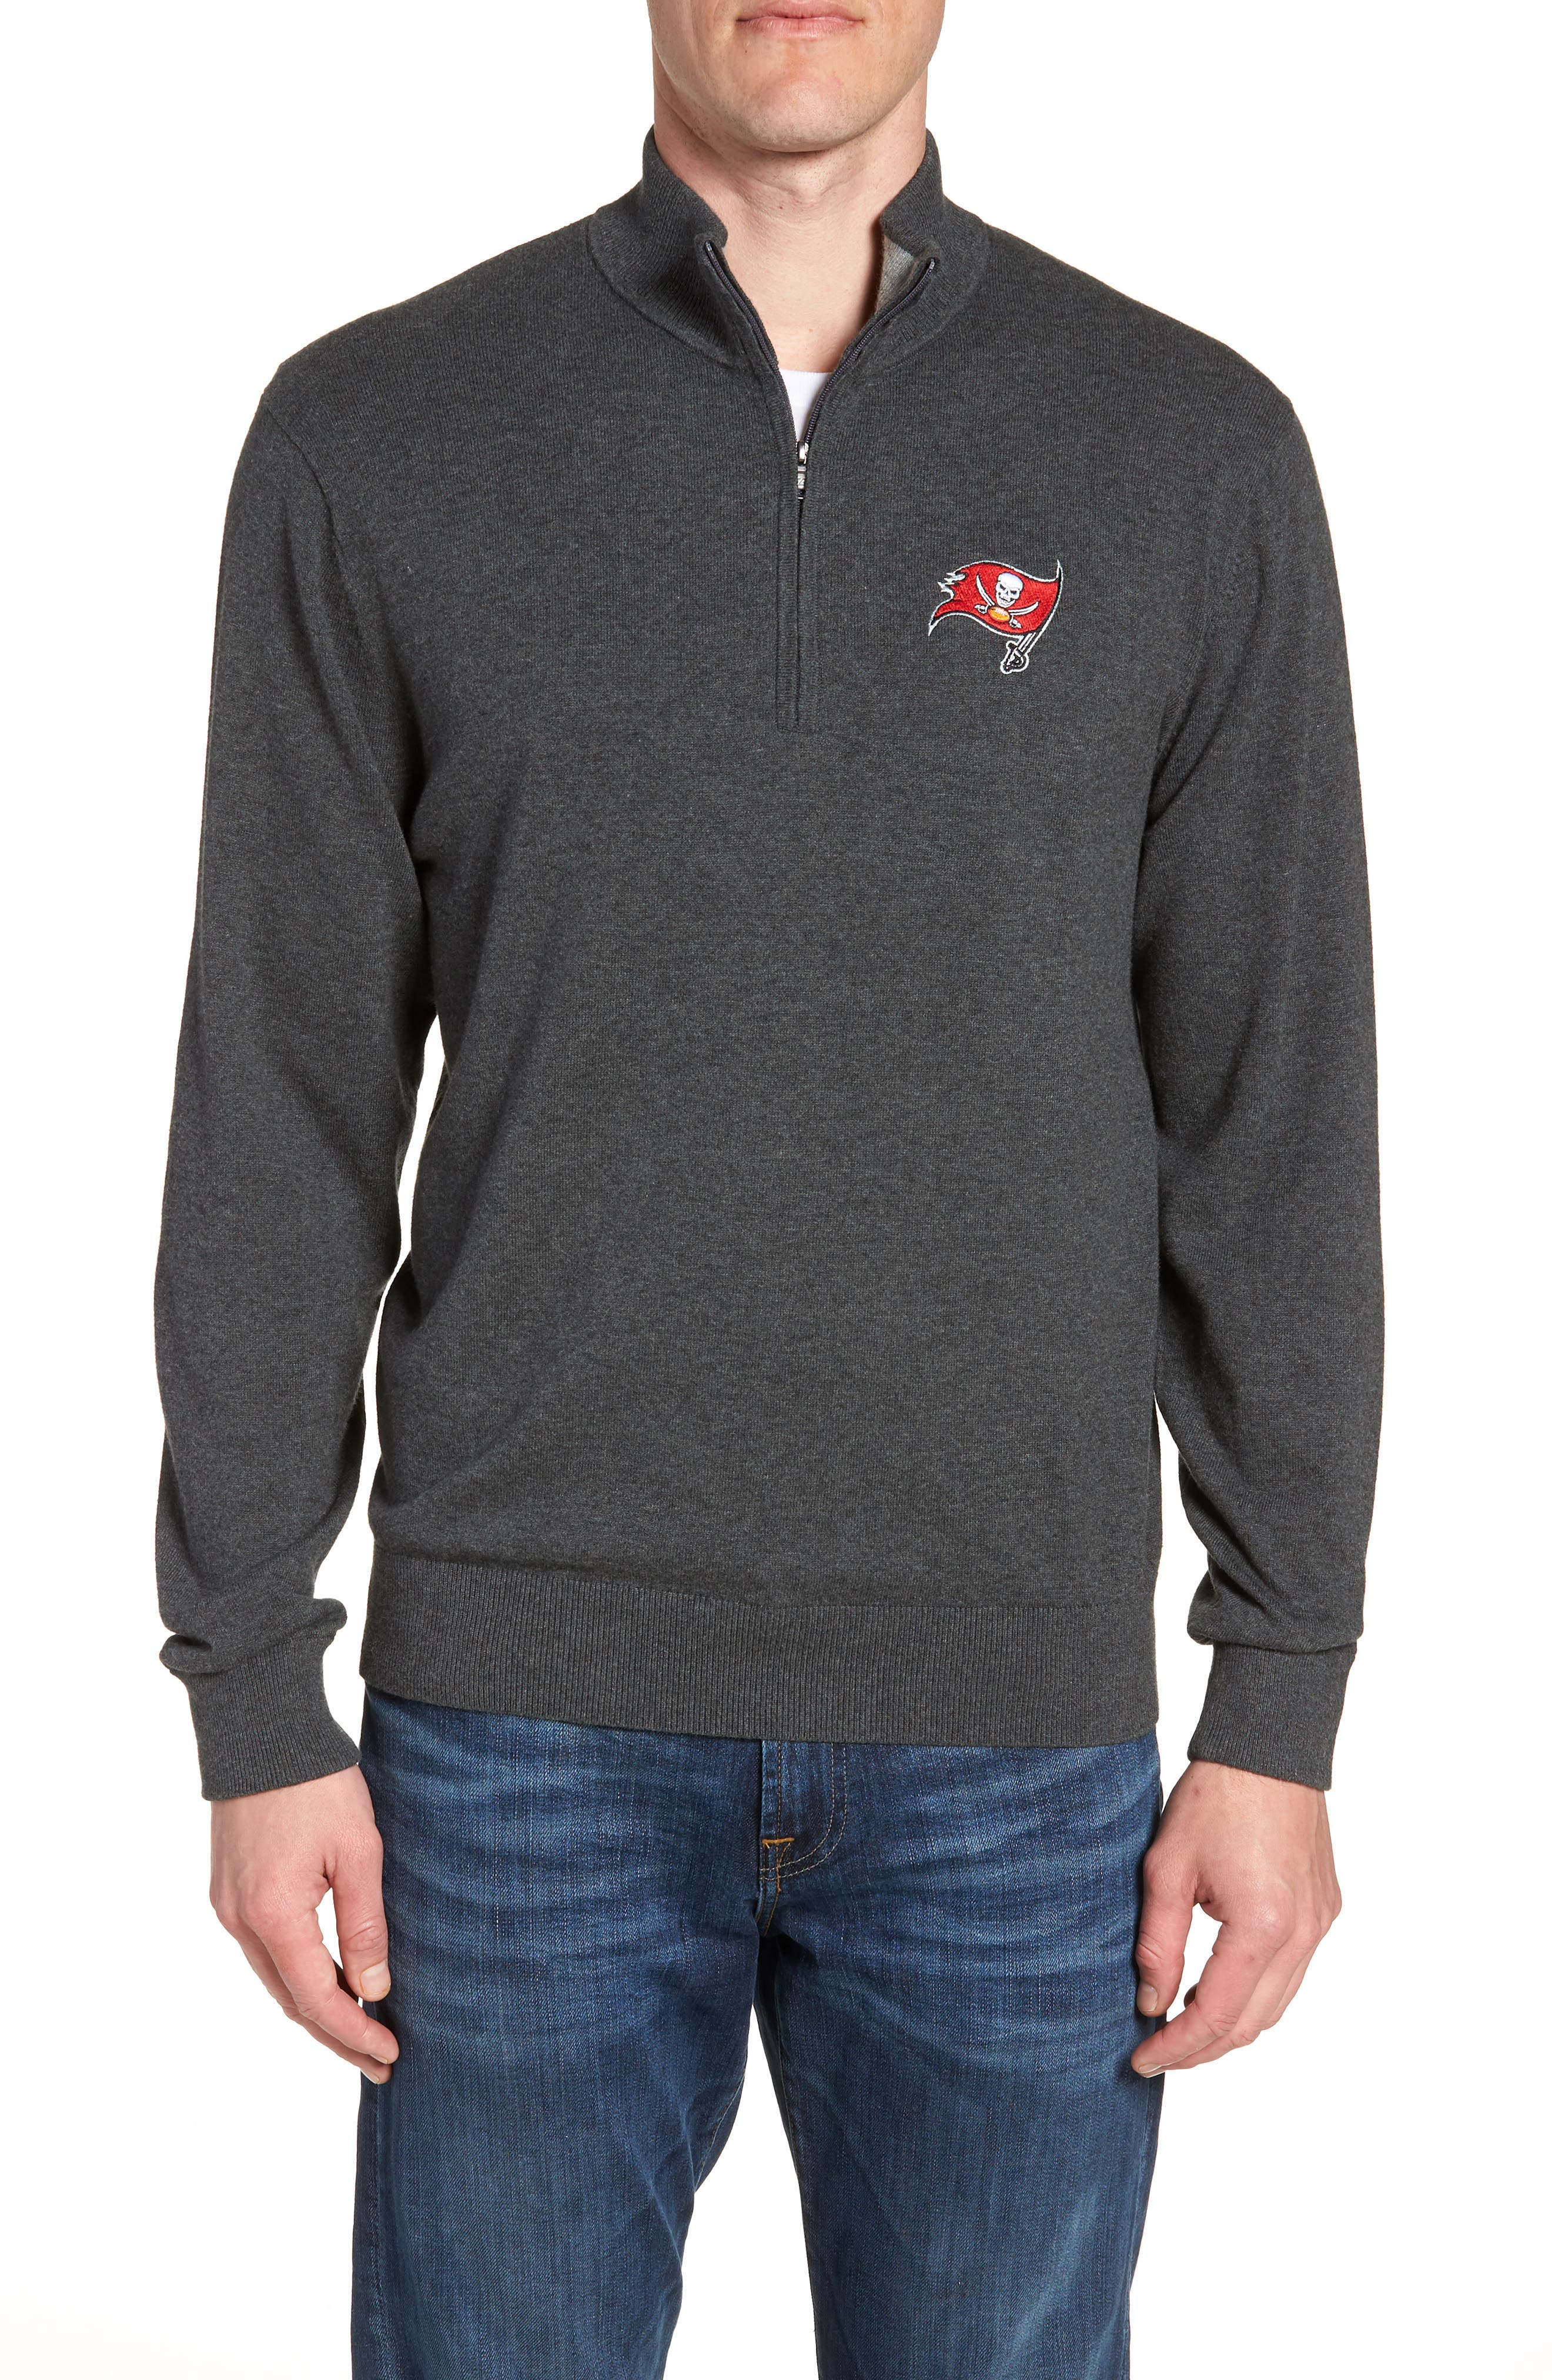 Tampa Bay Buccaneers - Lakemont Regular Fit Quarter Zip Sweater,                         Main,                         color, CHARCOAL HEATHER